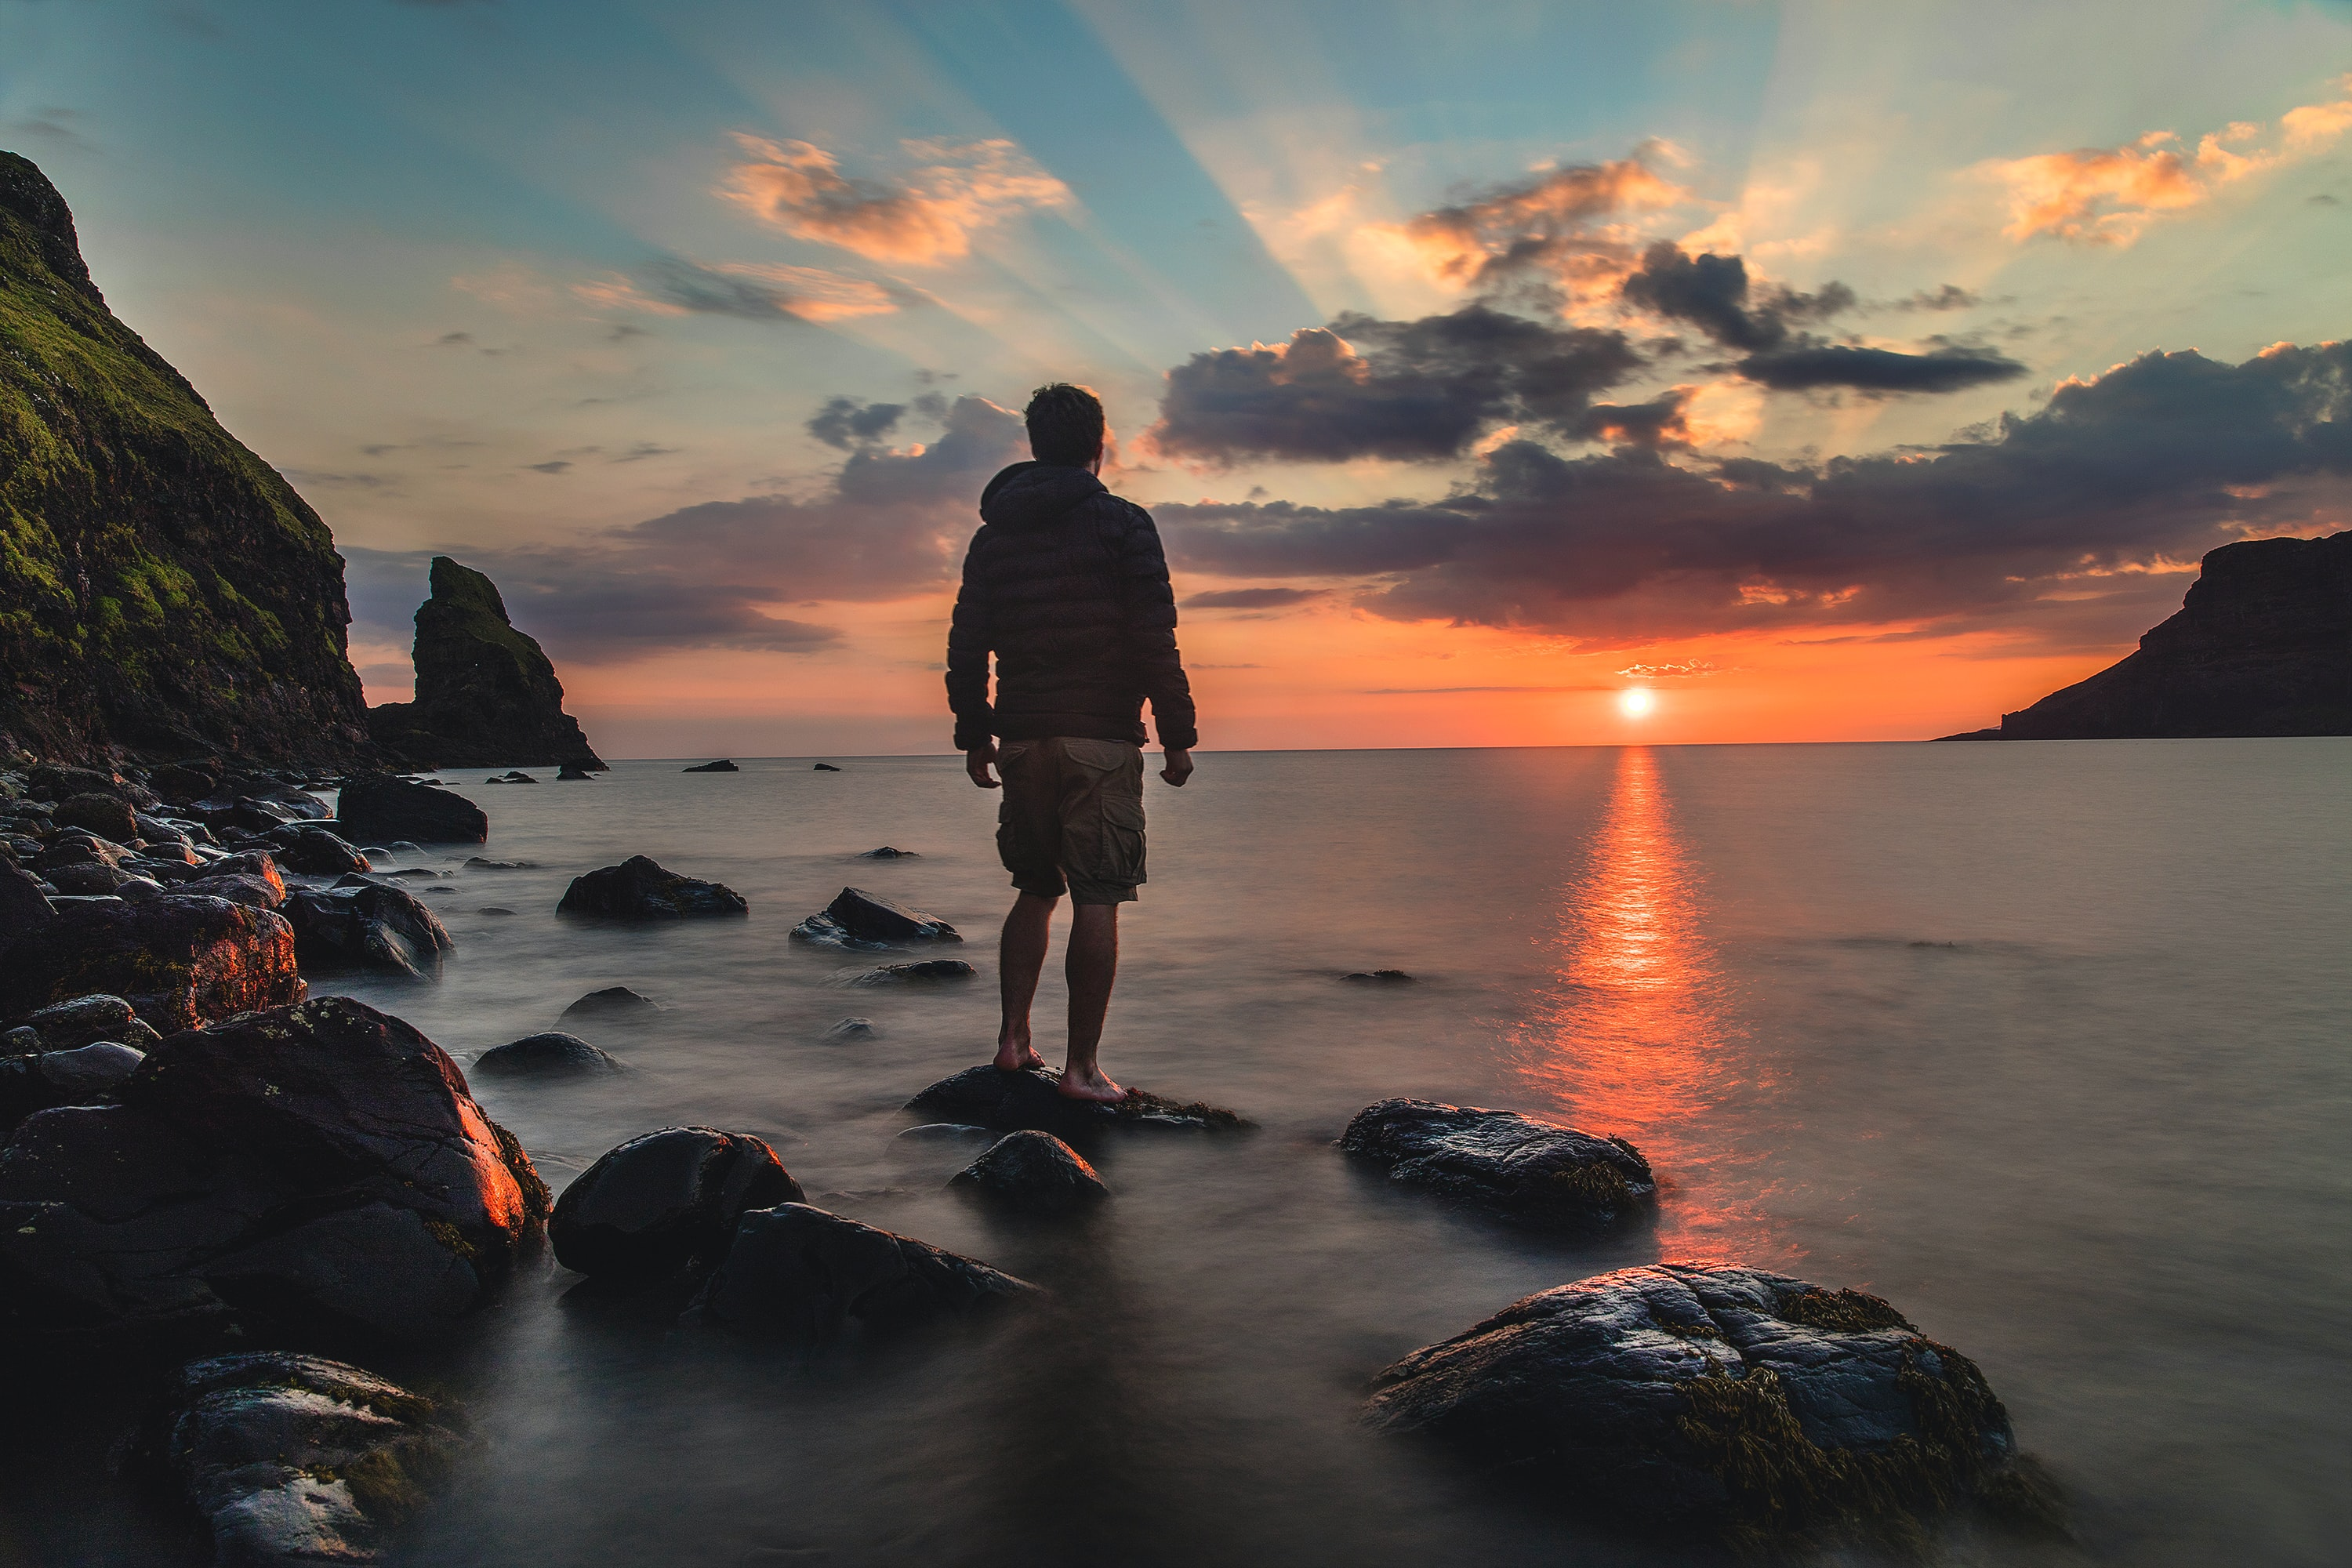 A man watching the sunset